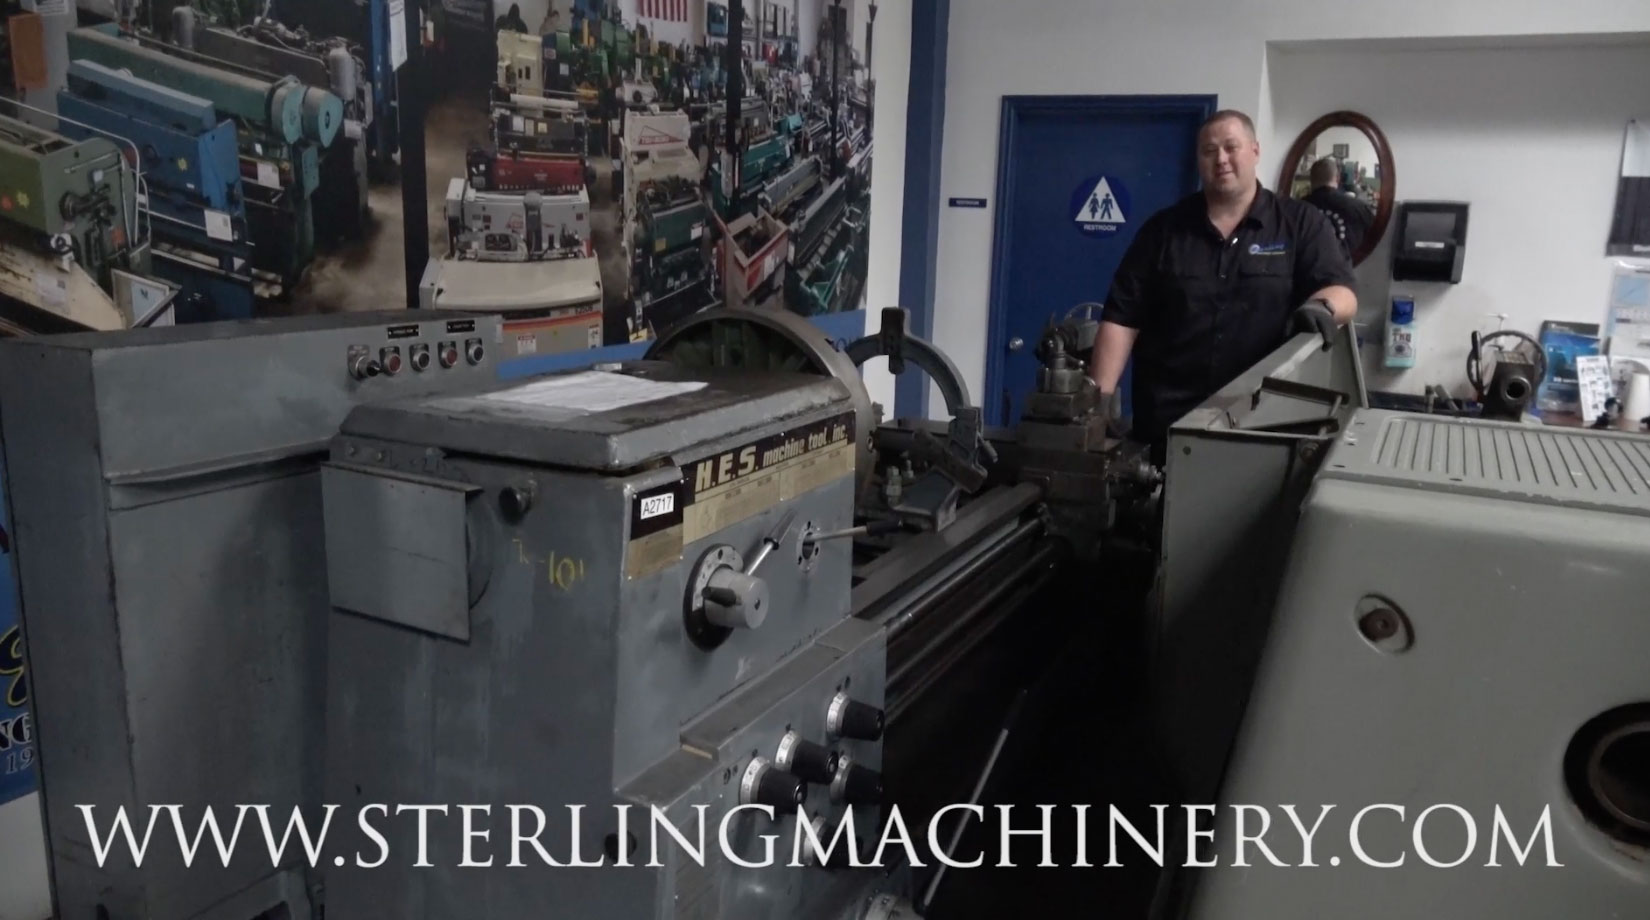 Used Lathes Engine Lathe For Sale Precision Lathes Tool Room >> Machinery Videos Of Dealer Machine Tools Showing Used Lathe Milling